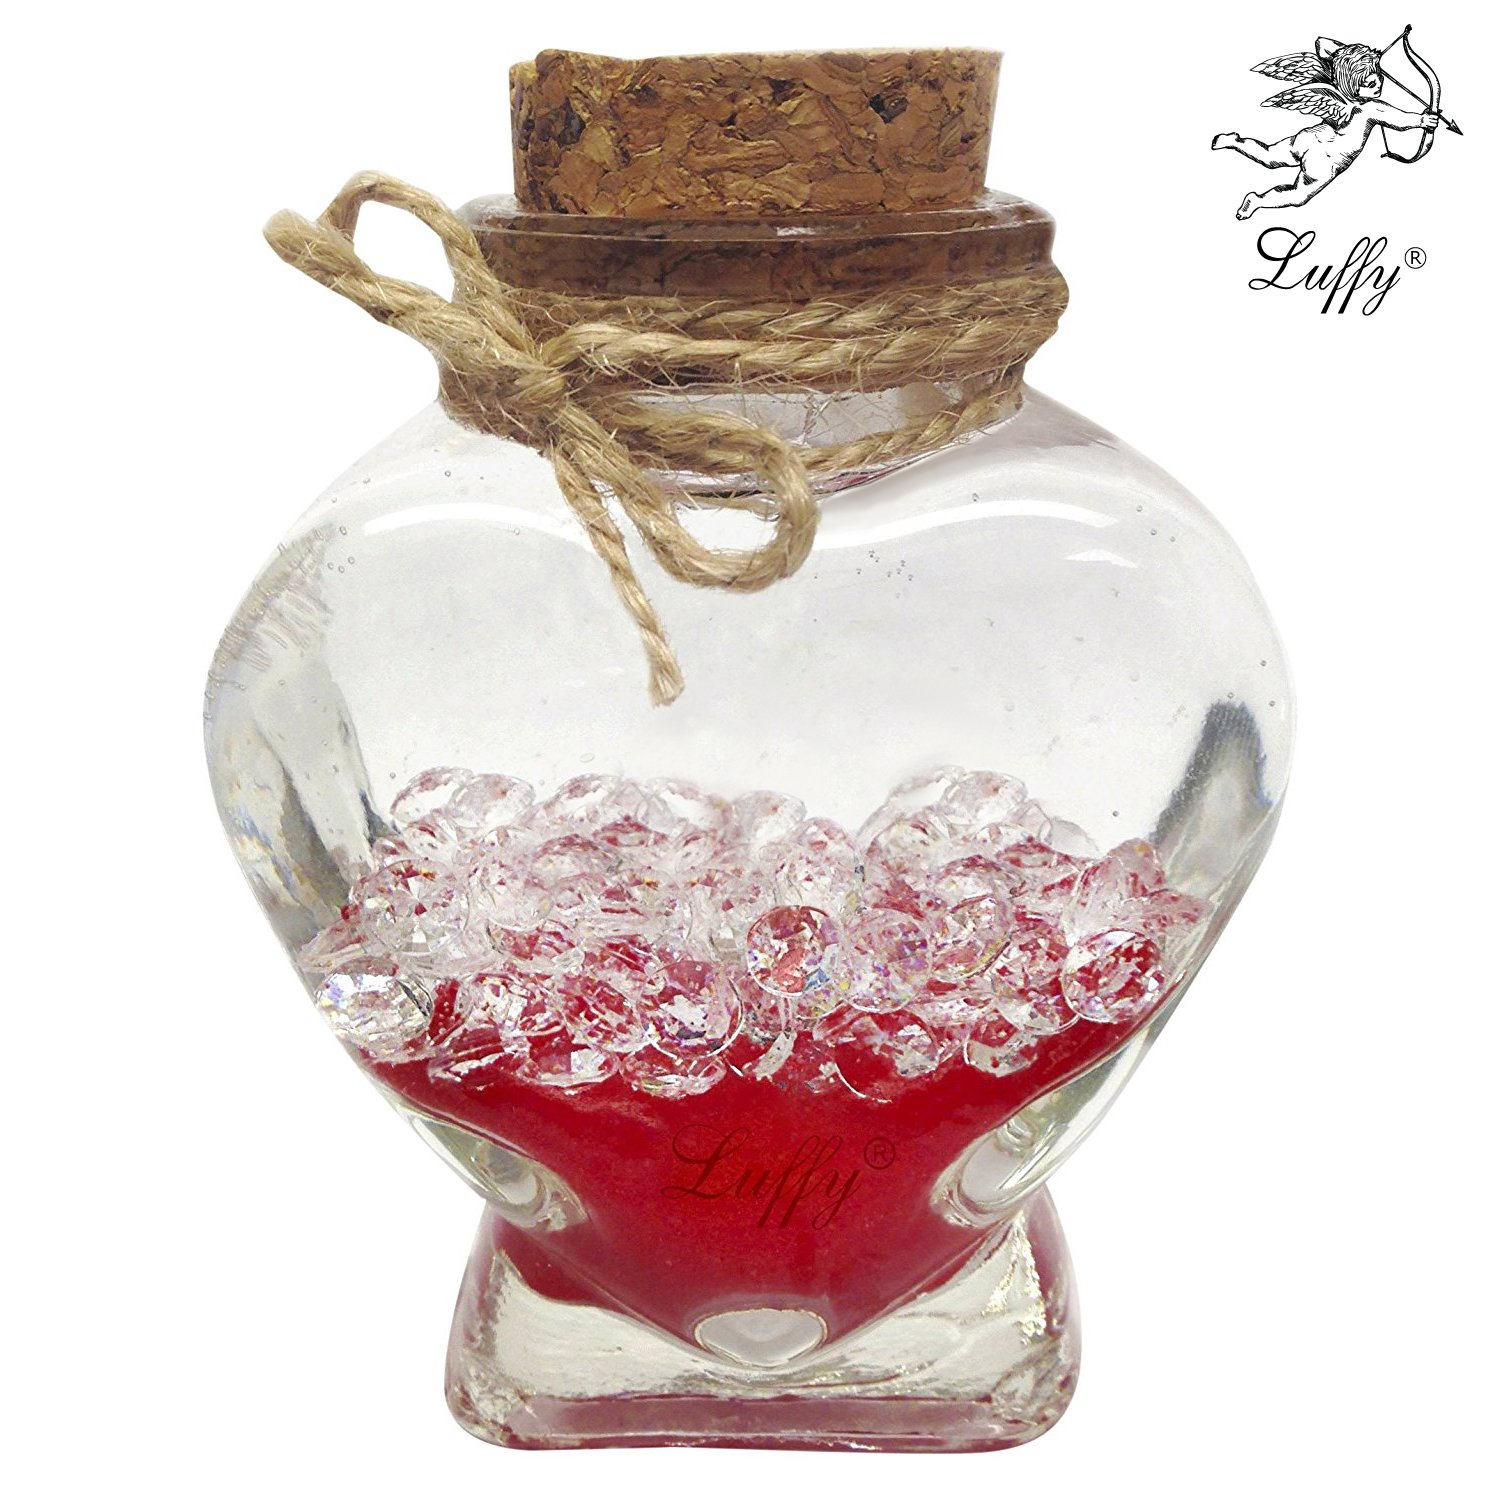 LUFFY Nano Marimo Jar - Clear Heart shaped Glass Bottle with Cork Stopper - Perfect for Aromatherapy Oils, Party Favors, Spices, Bath Bubbles and DIY Projects